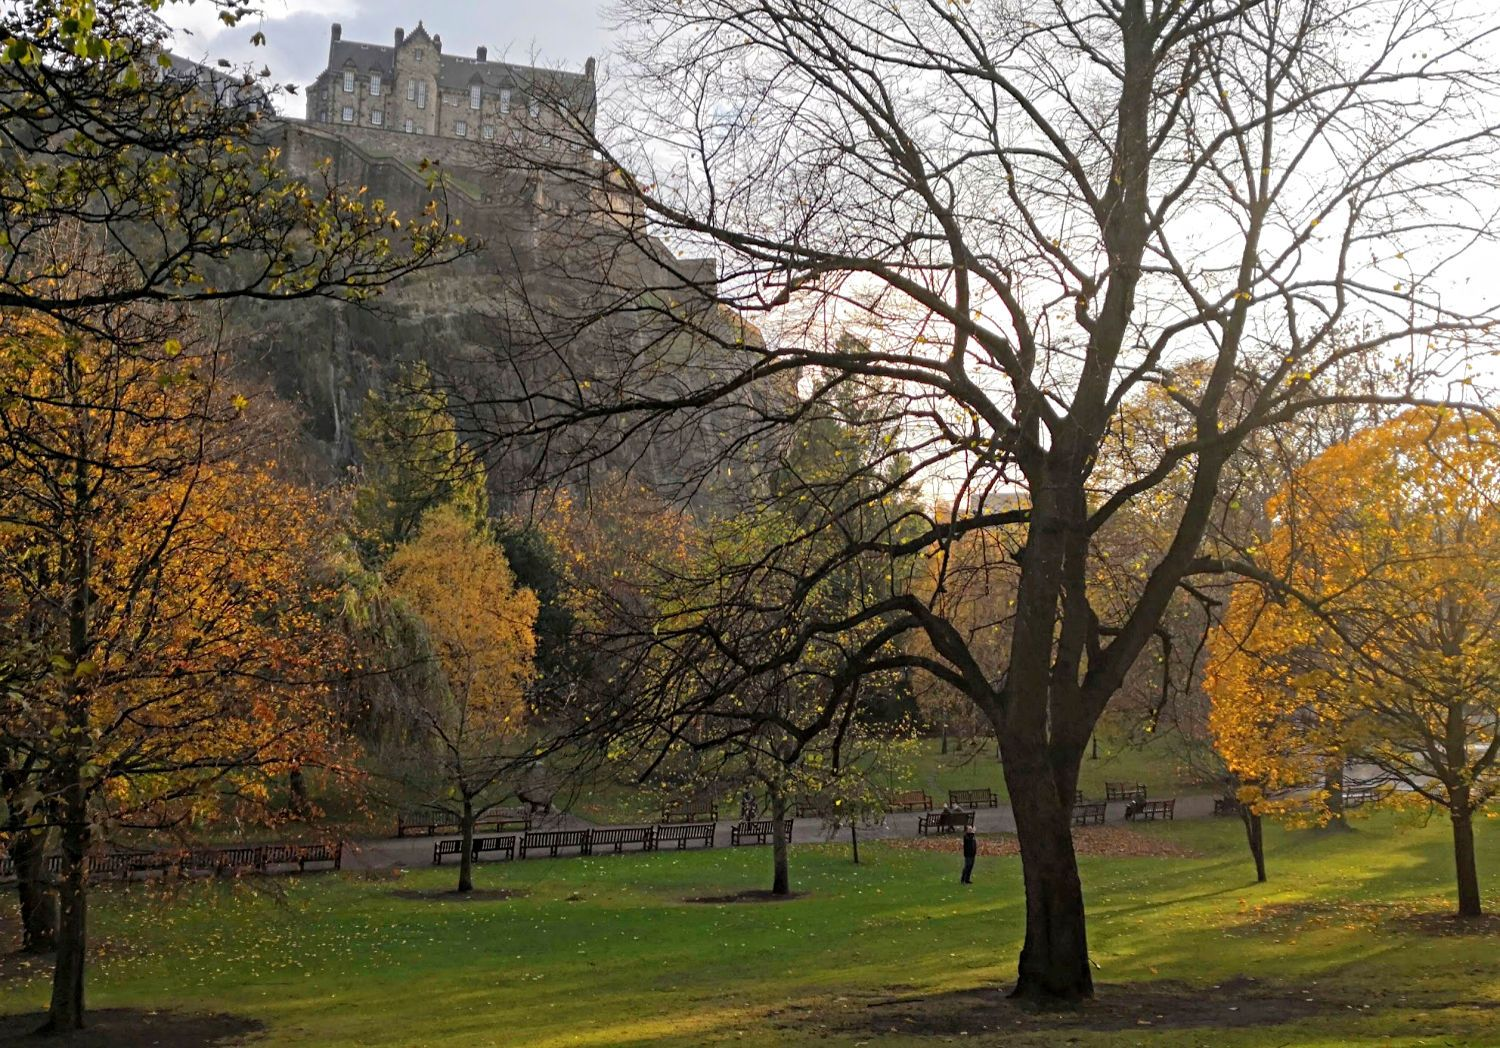 This is a calm day in Princes Street Gardens, Edinburgh. It's November 5 and there is still some fall colour to enjoy.